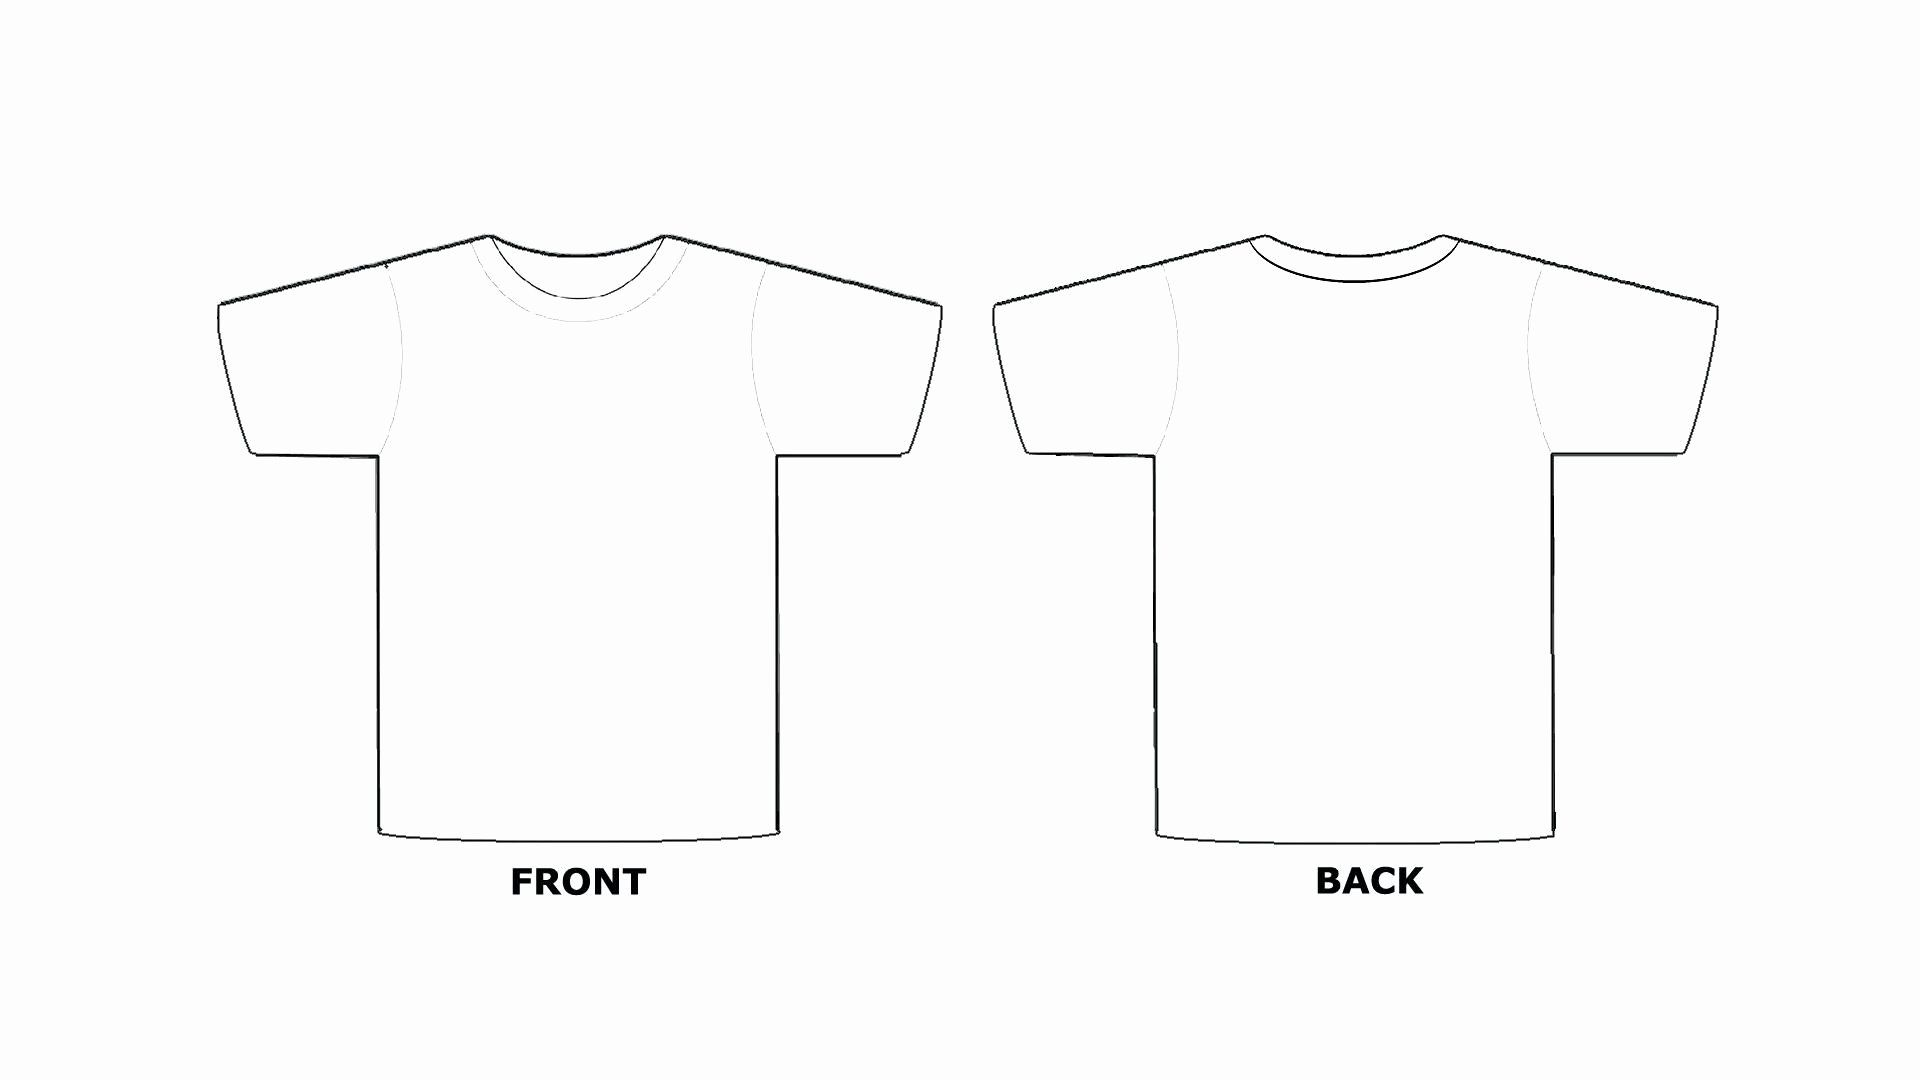 Download Blank Tshirt Template Unique Blank Tee Shirt Template Emmamcintyrephotography Shirt Template Funeral Program Template Tee Shirts